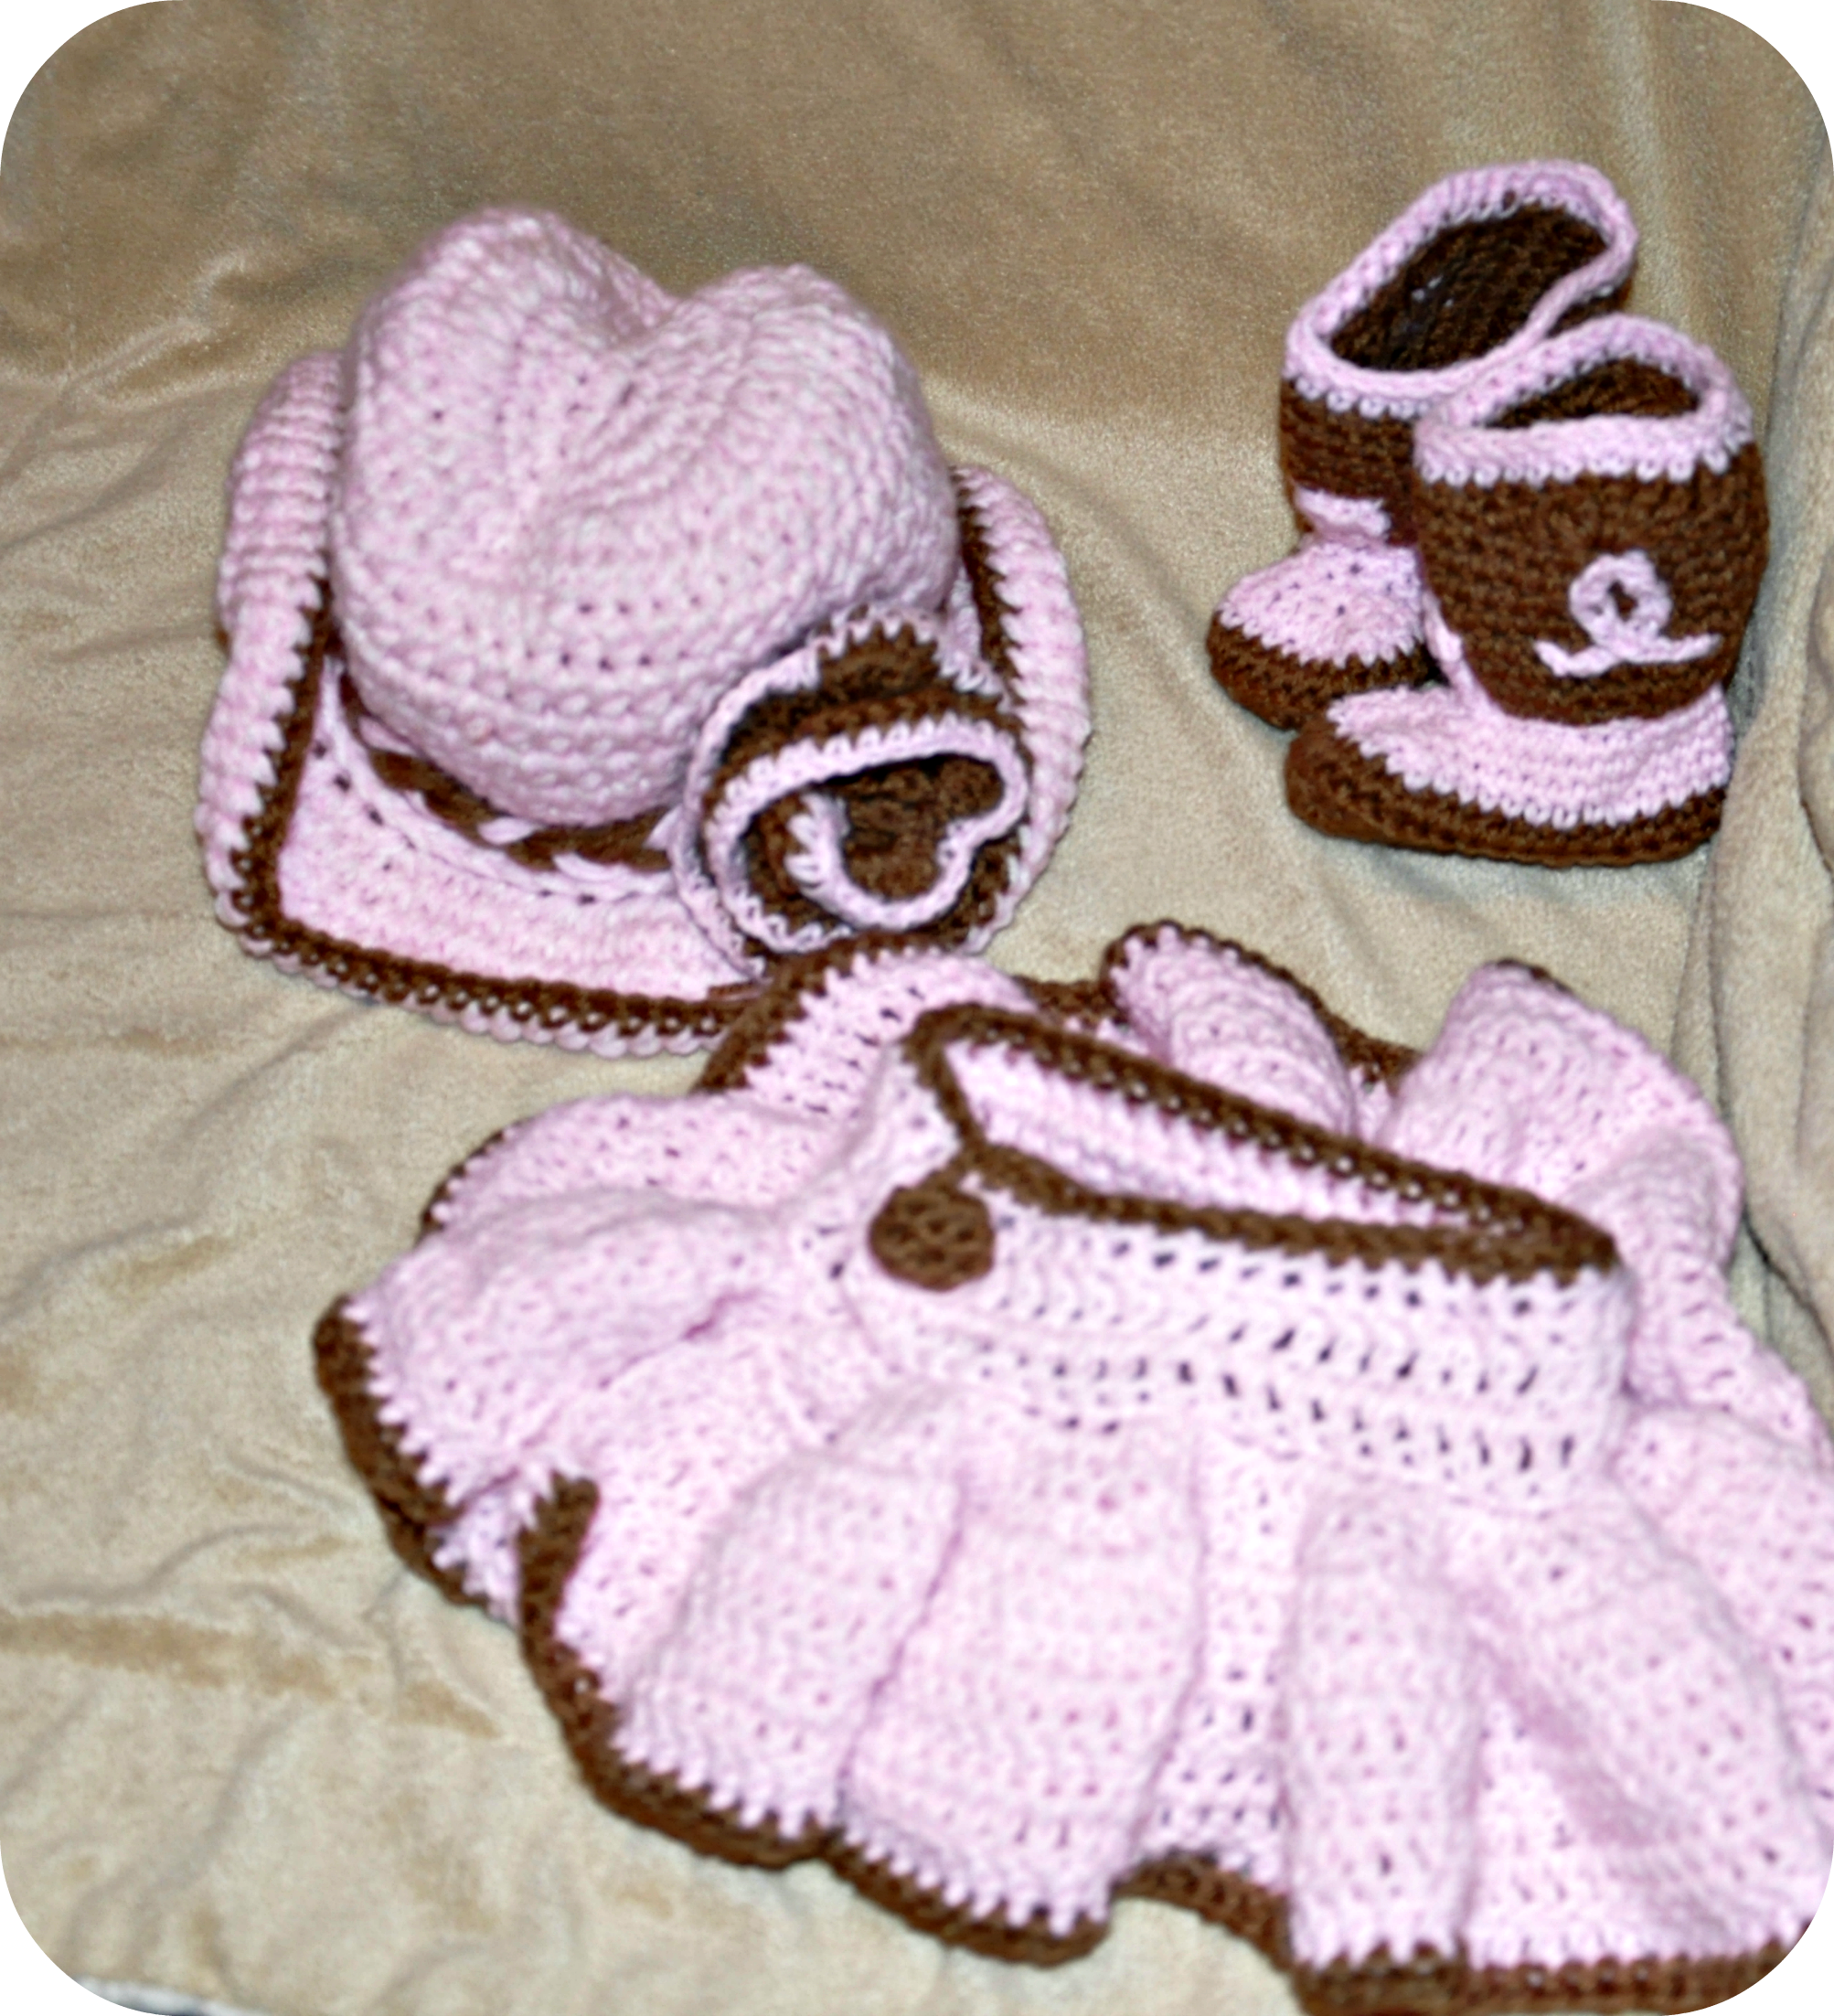 Crochet Baby Outfit Pattern : Cowboy hat crochet Military Bride